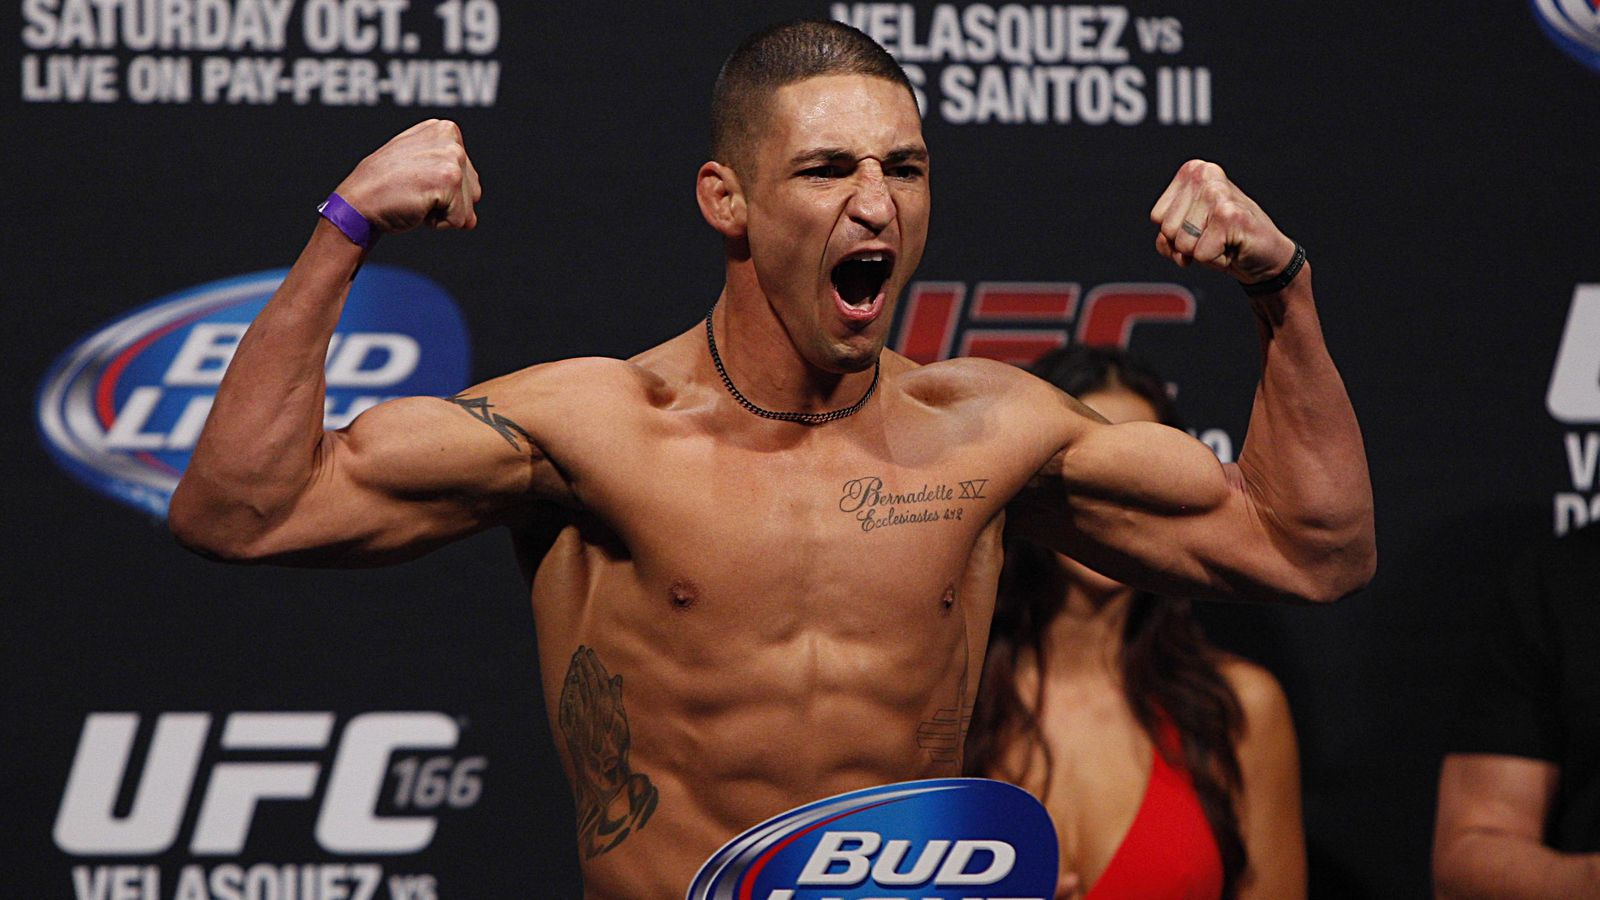 diego sanchez - photo #23